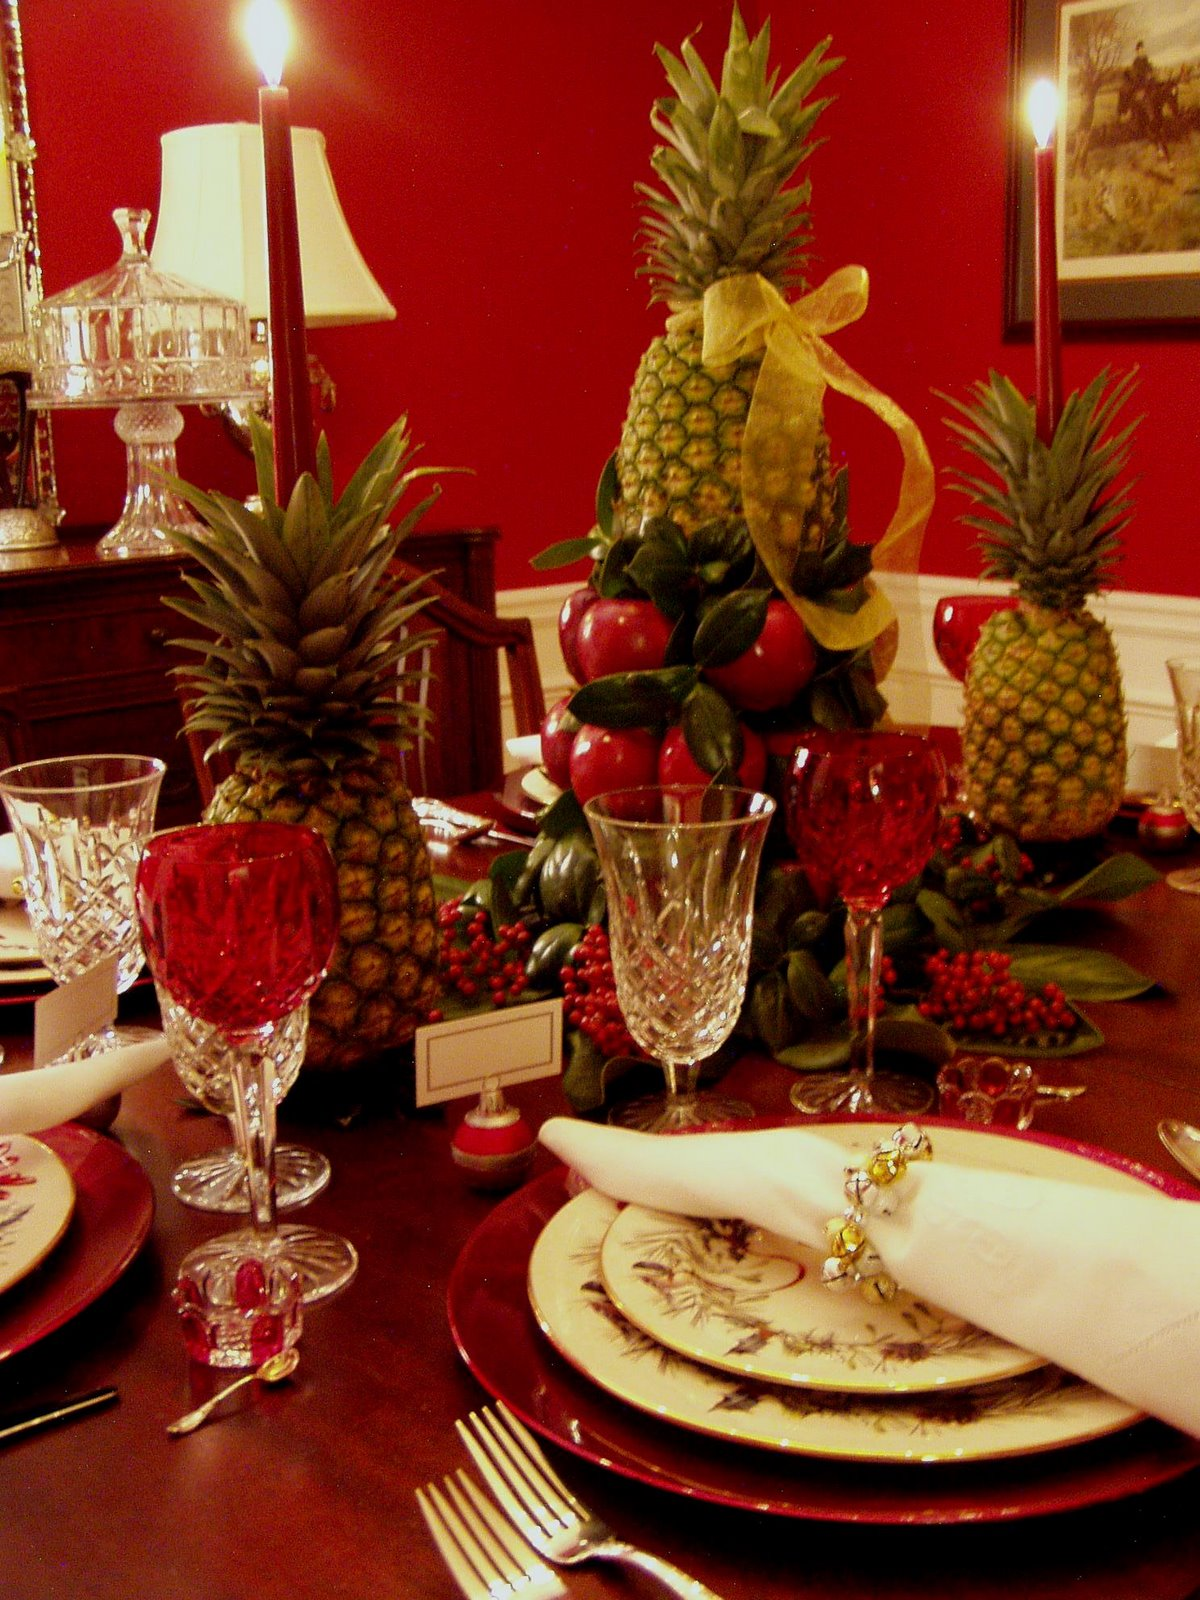 colonial williamsburg christmas table setting with apple. Black Bedroom Furniture Sets. Home Design Ideas